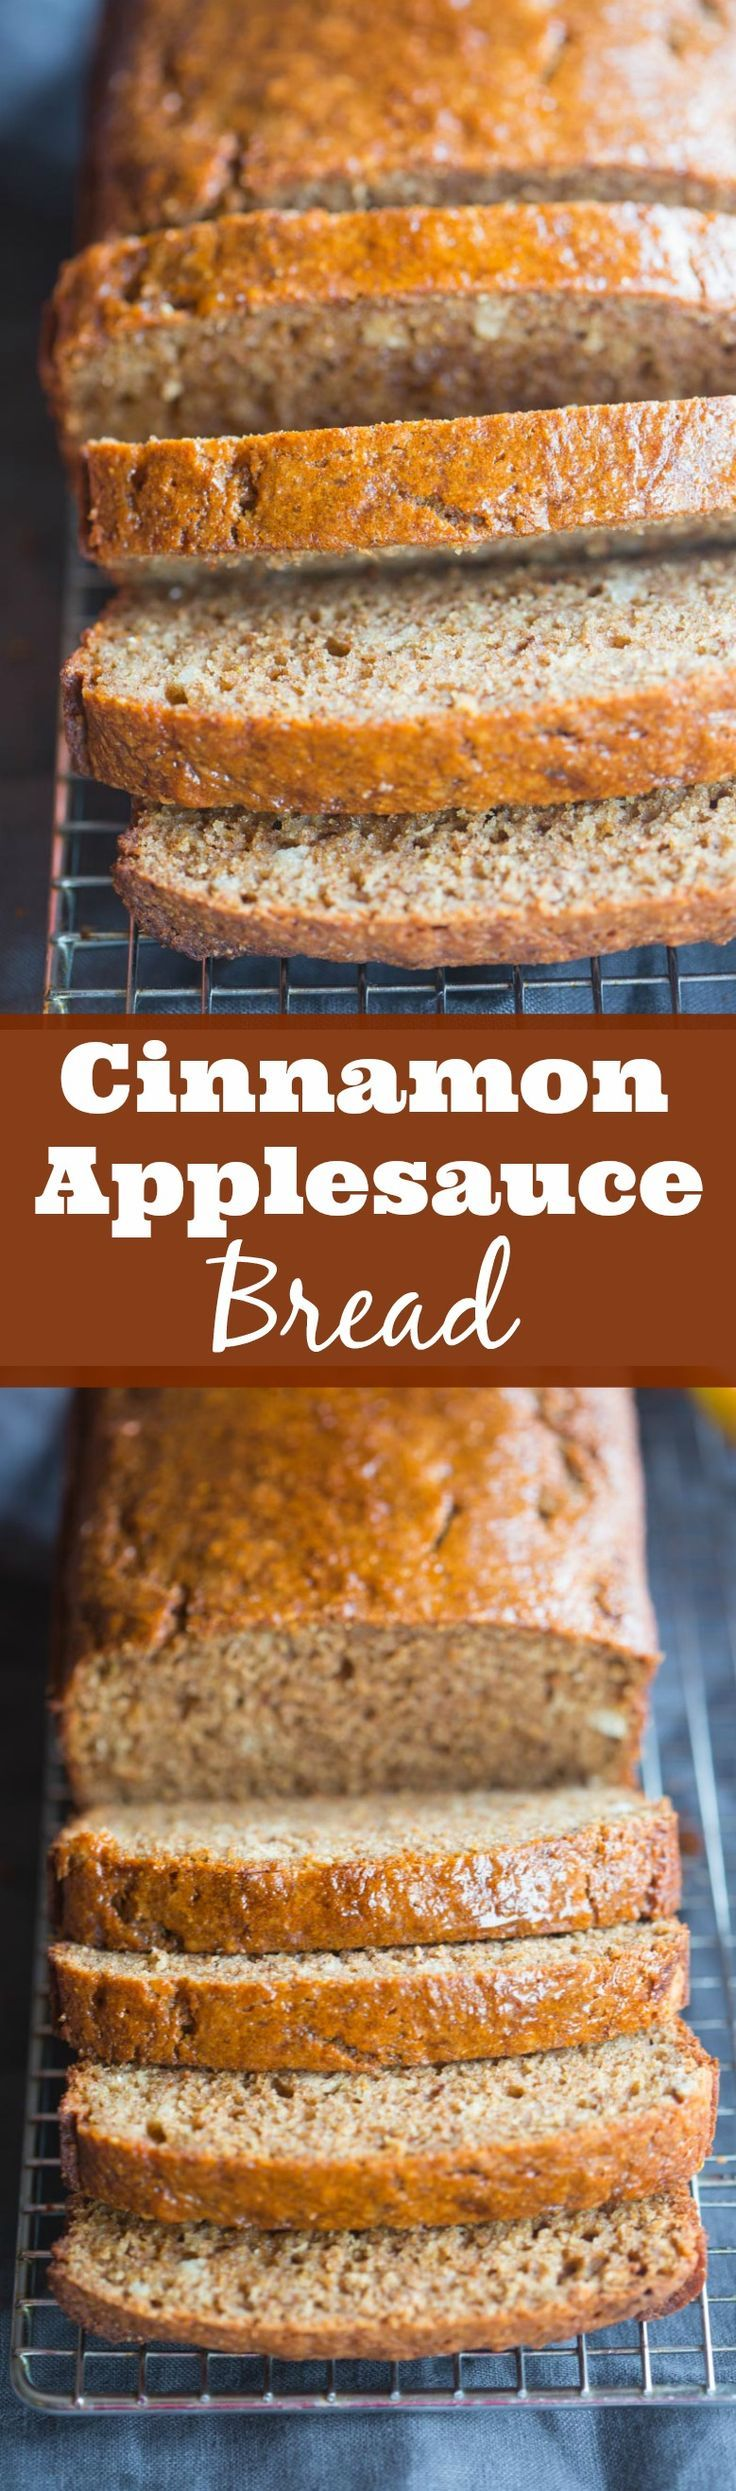 The BEST Cinnamon Applesauce Bread! Bakery style and made with whole grains